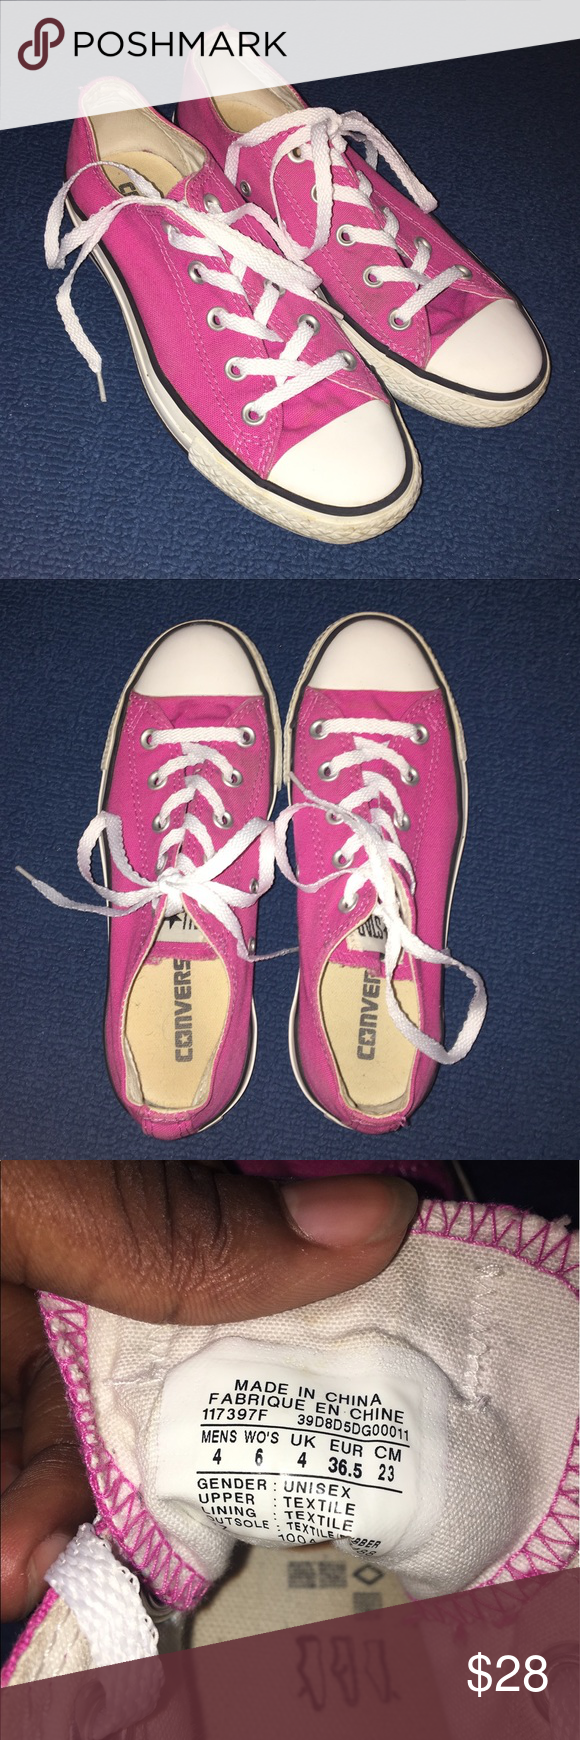 Pink Low-Top Converse Women's size 6, men's size 4 • Converse have different laces in them, but are still white laces so not much different.  • Converse in great condition!  • Will make sure shoes are really white before being shipped :) Converse Shoes Sneakers